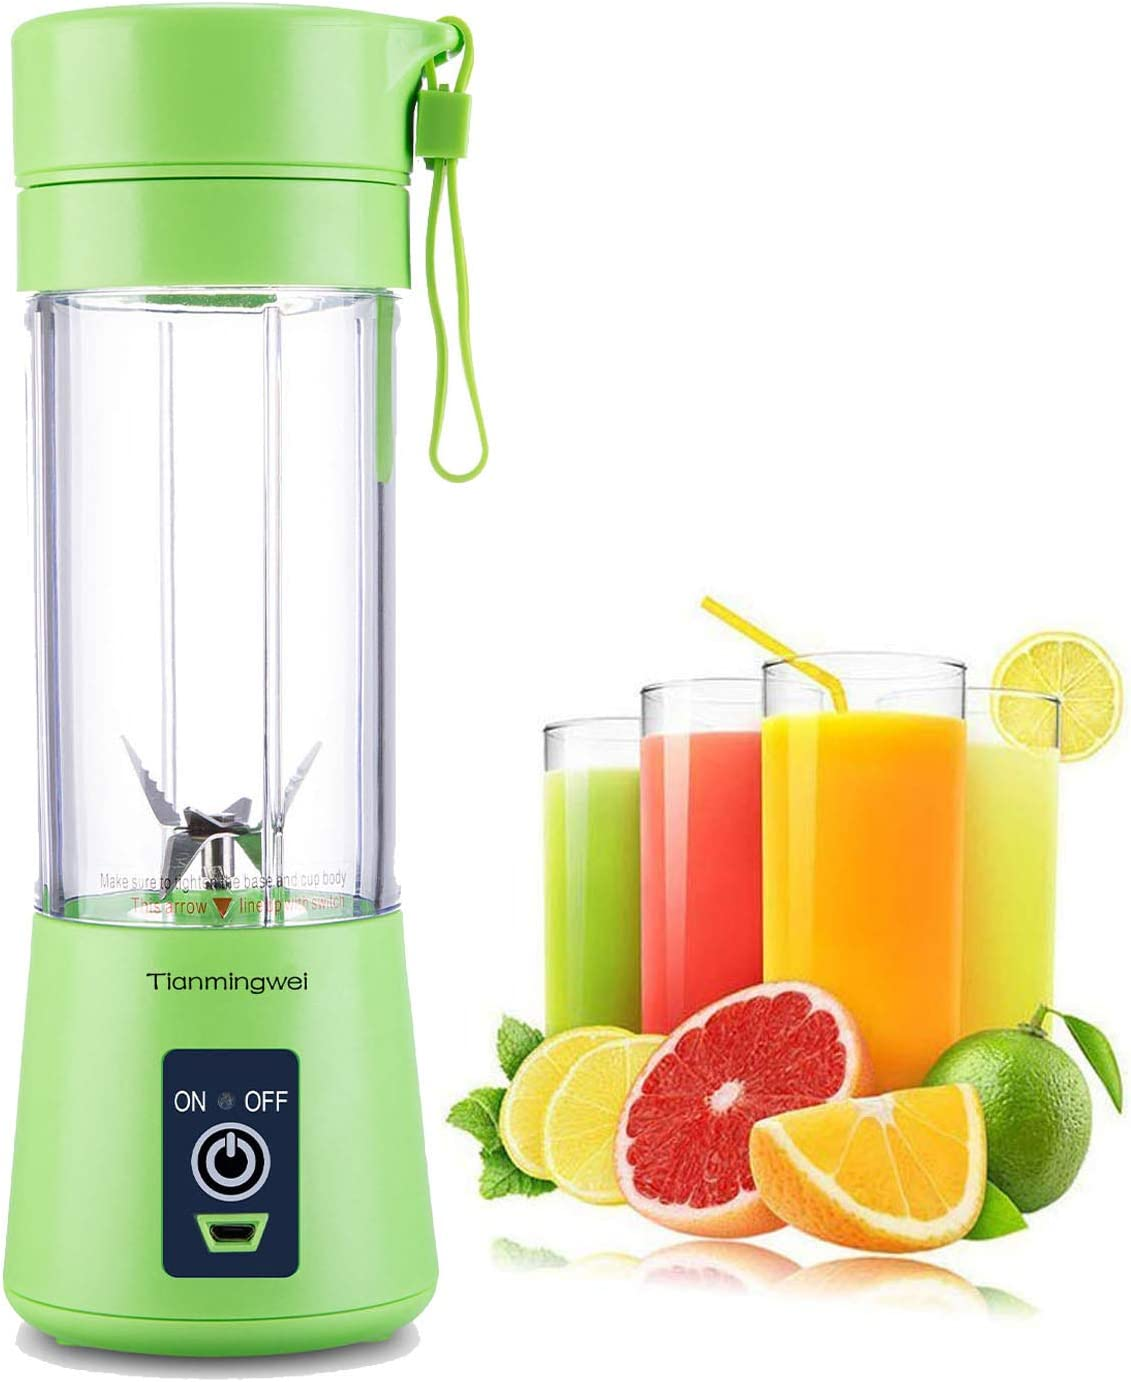 6 Blades Blender Portable Juicer Mixer